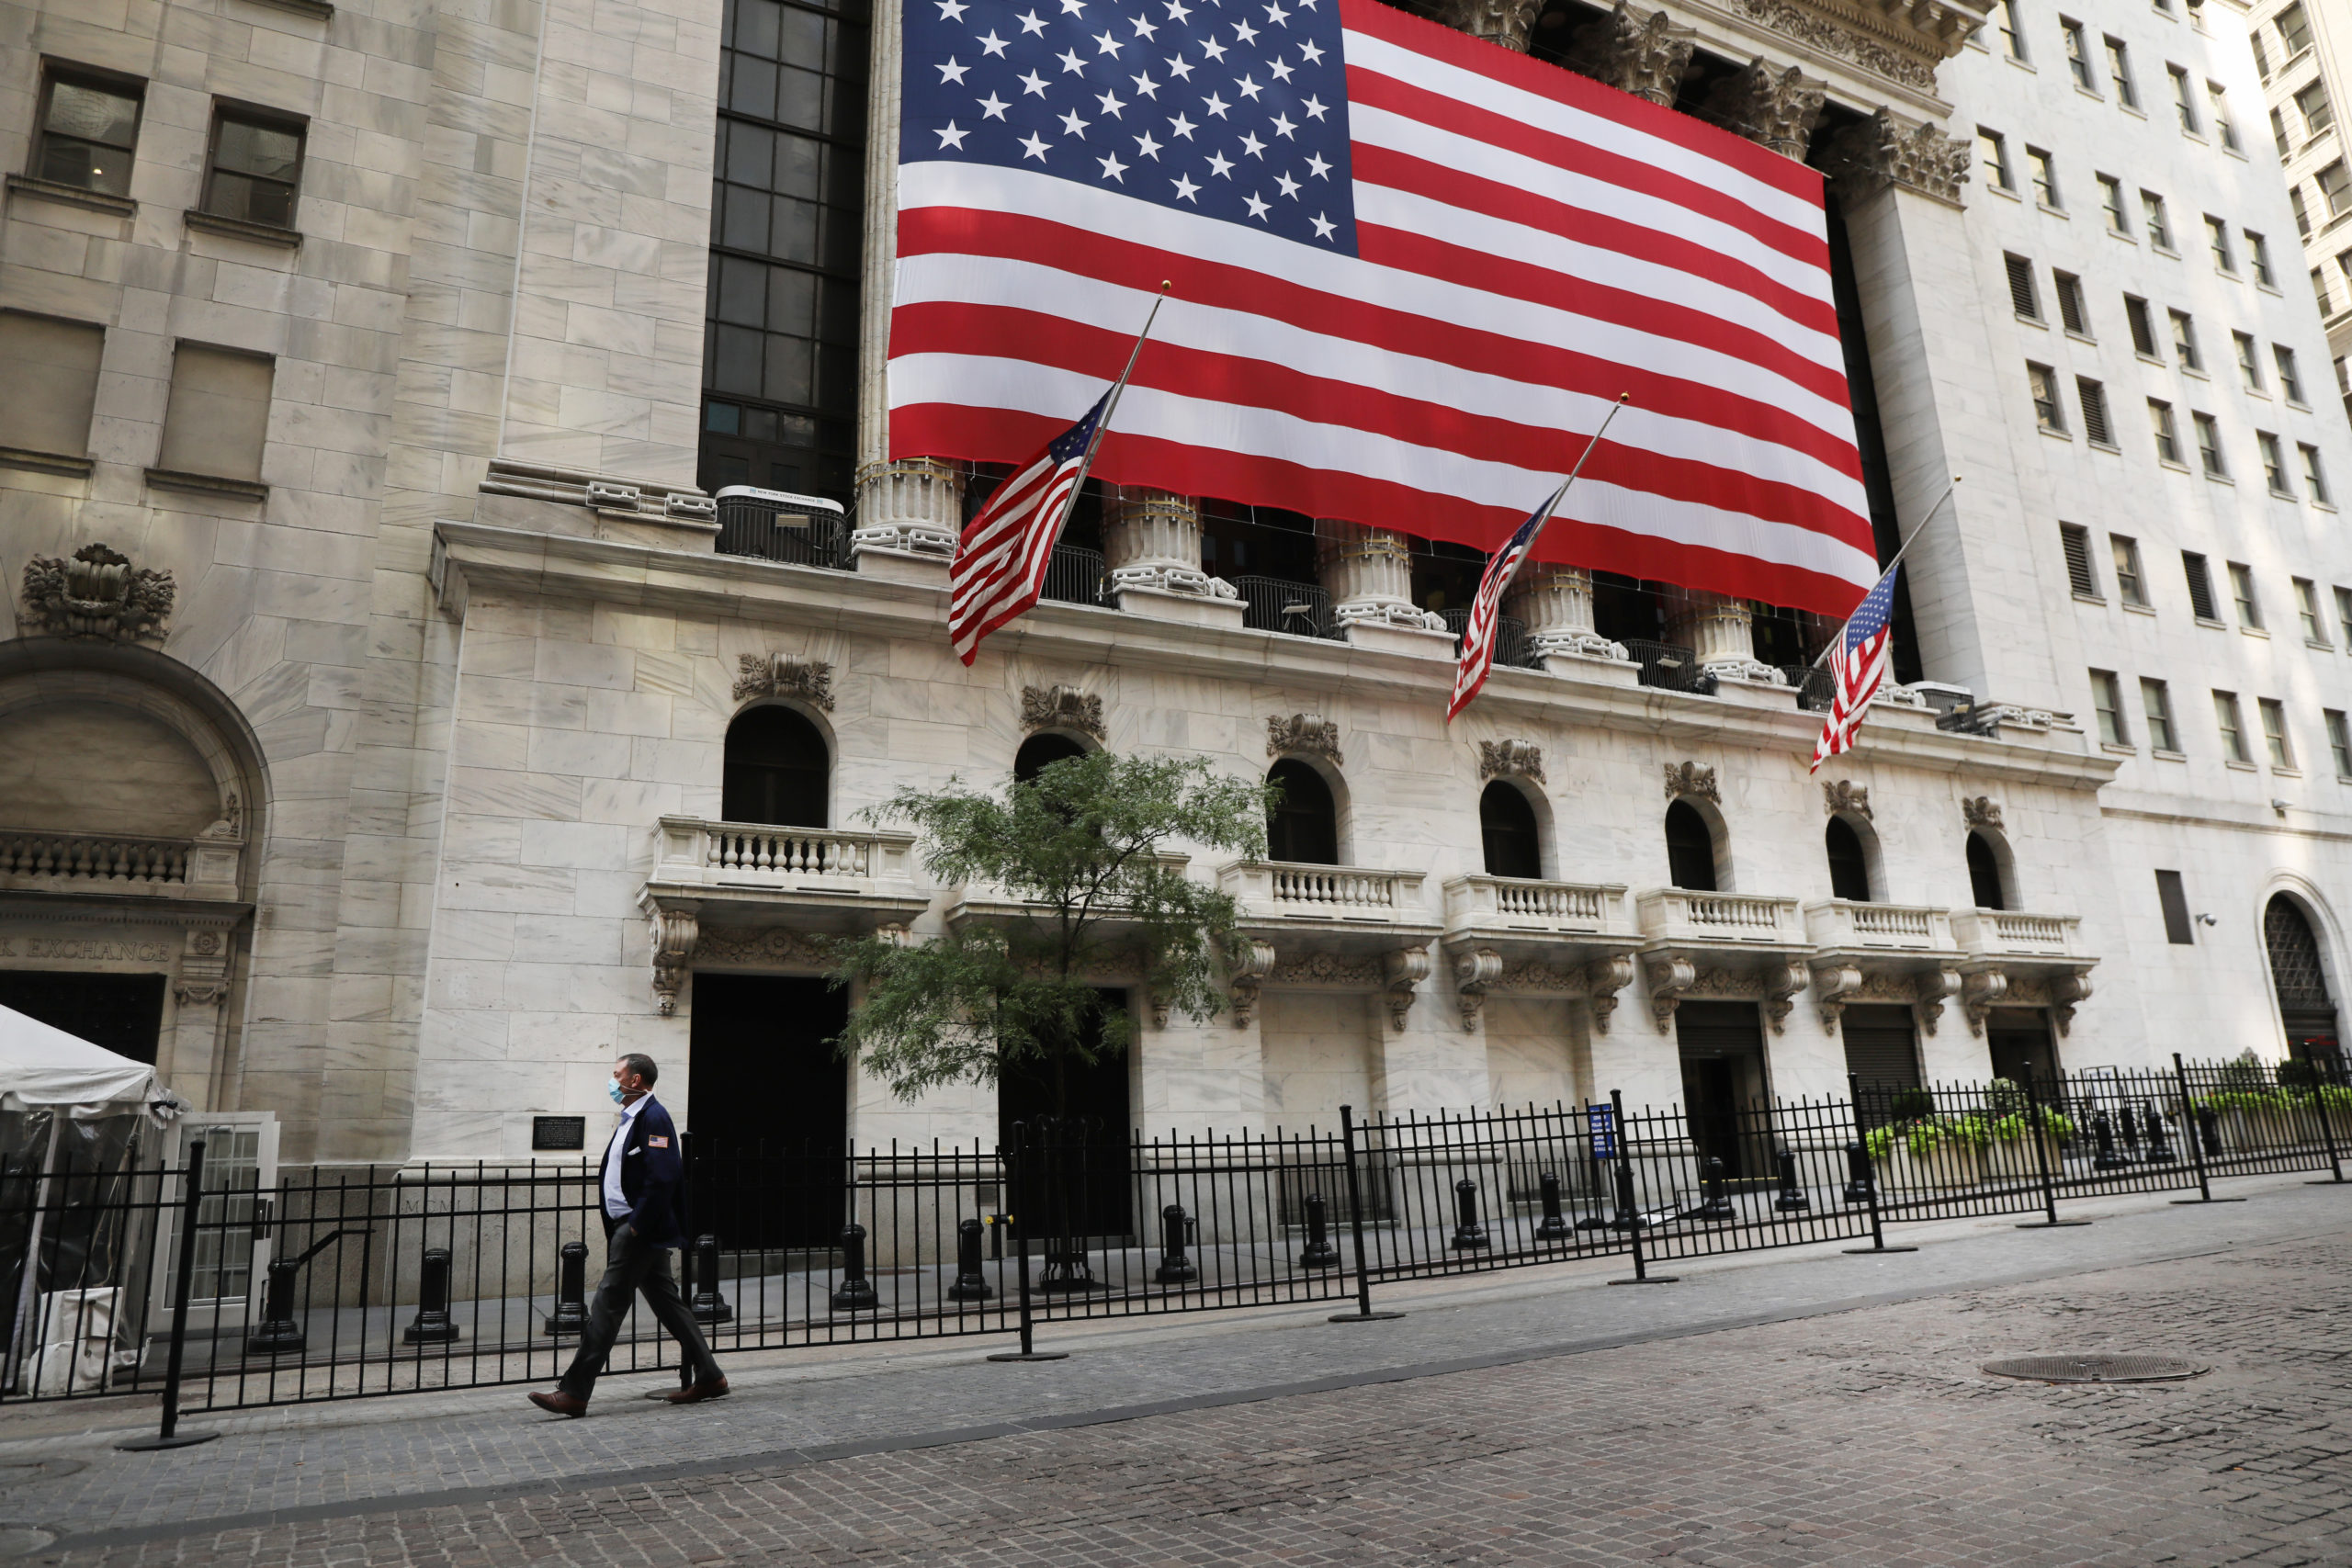 A person walks in front of the New York Stock Exchange in lower Manhattan on September 21, 2020 in New York City. (Spencer Platt/Getty Images)